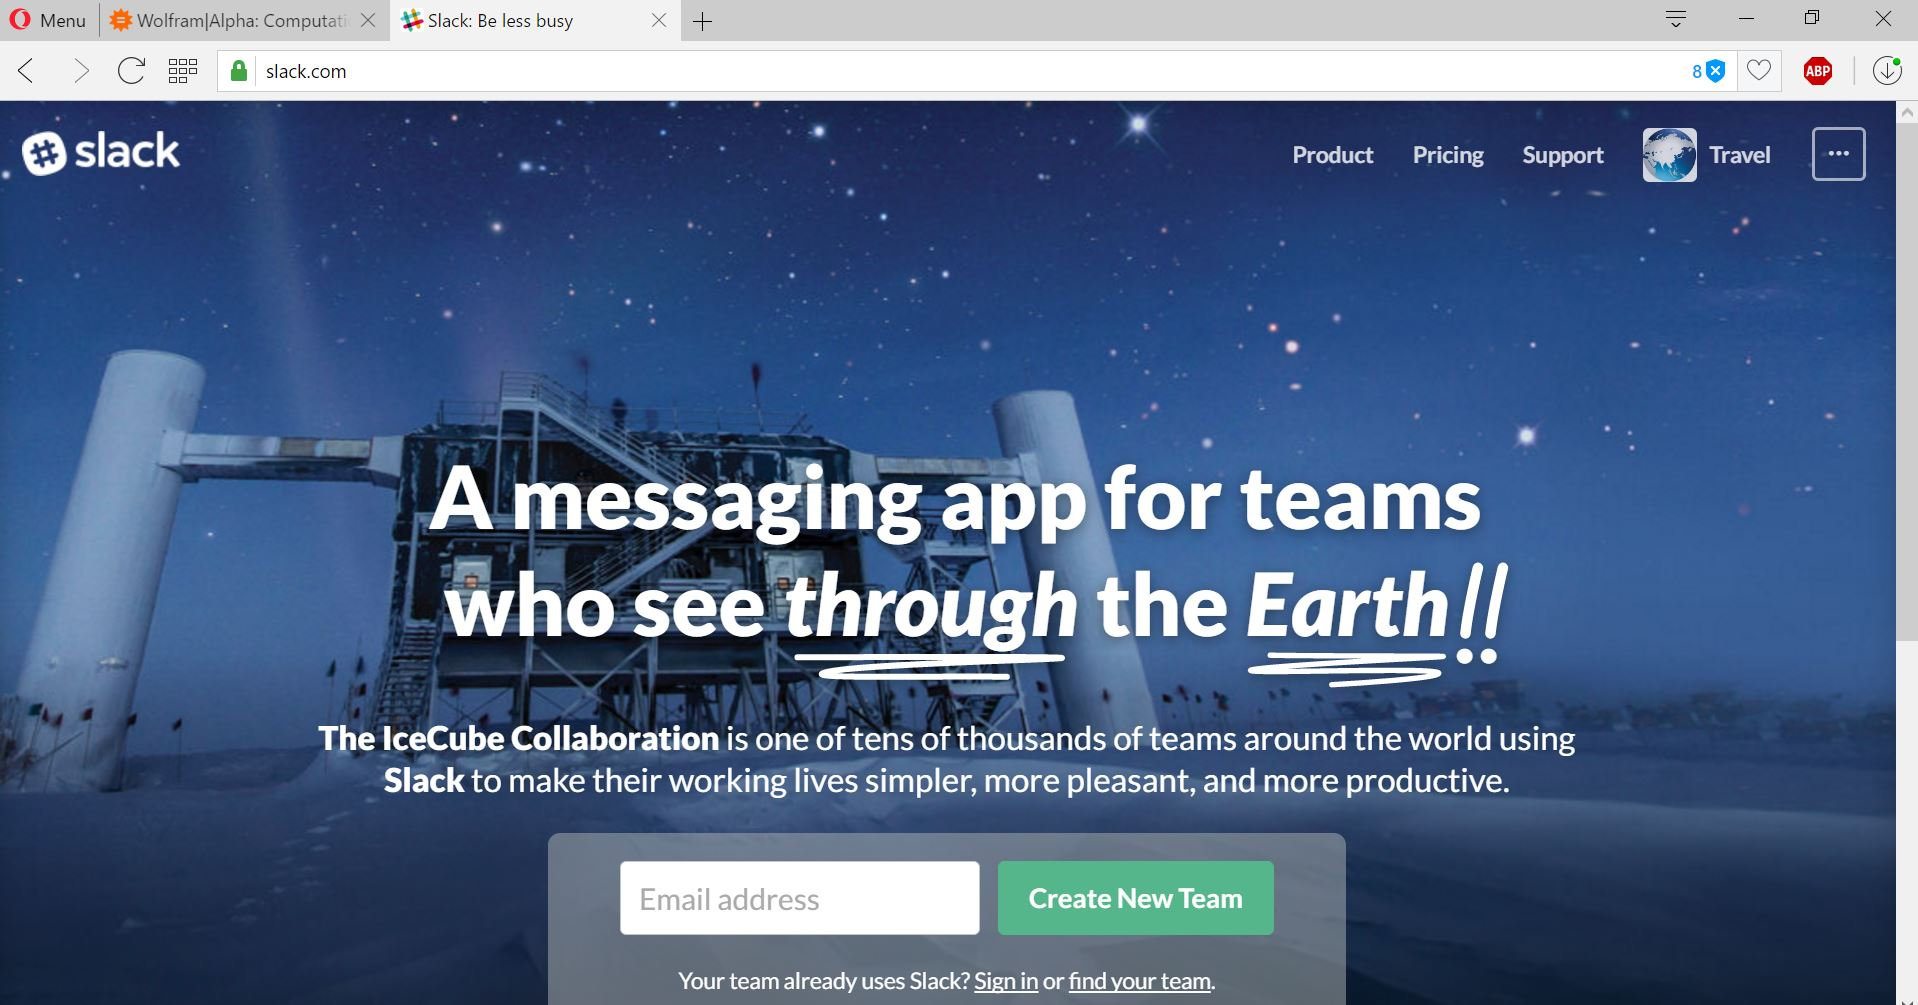 Slack is quite good, but a bit pricey. Hope they make it.